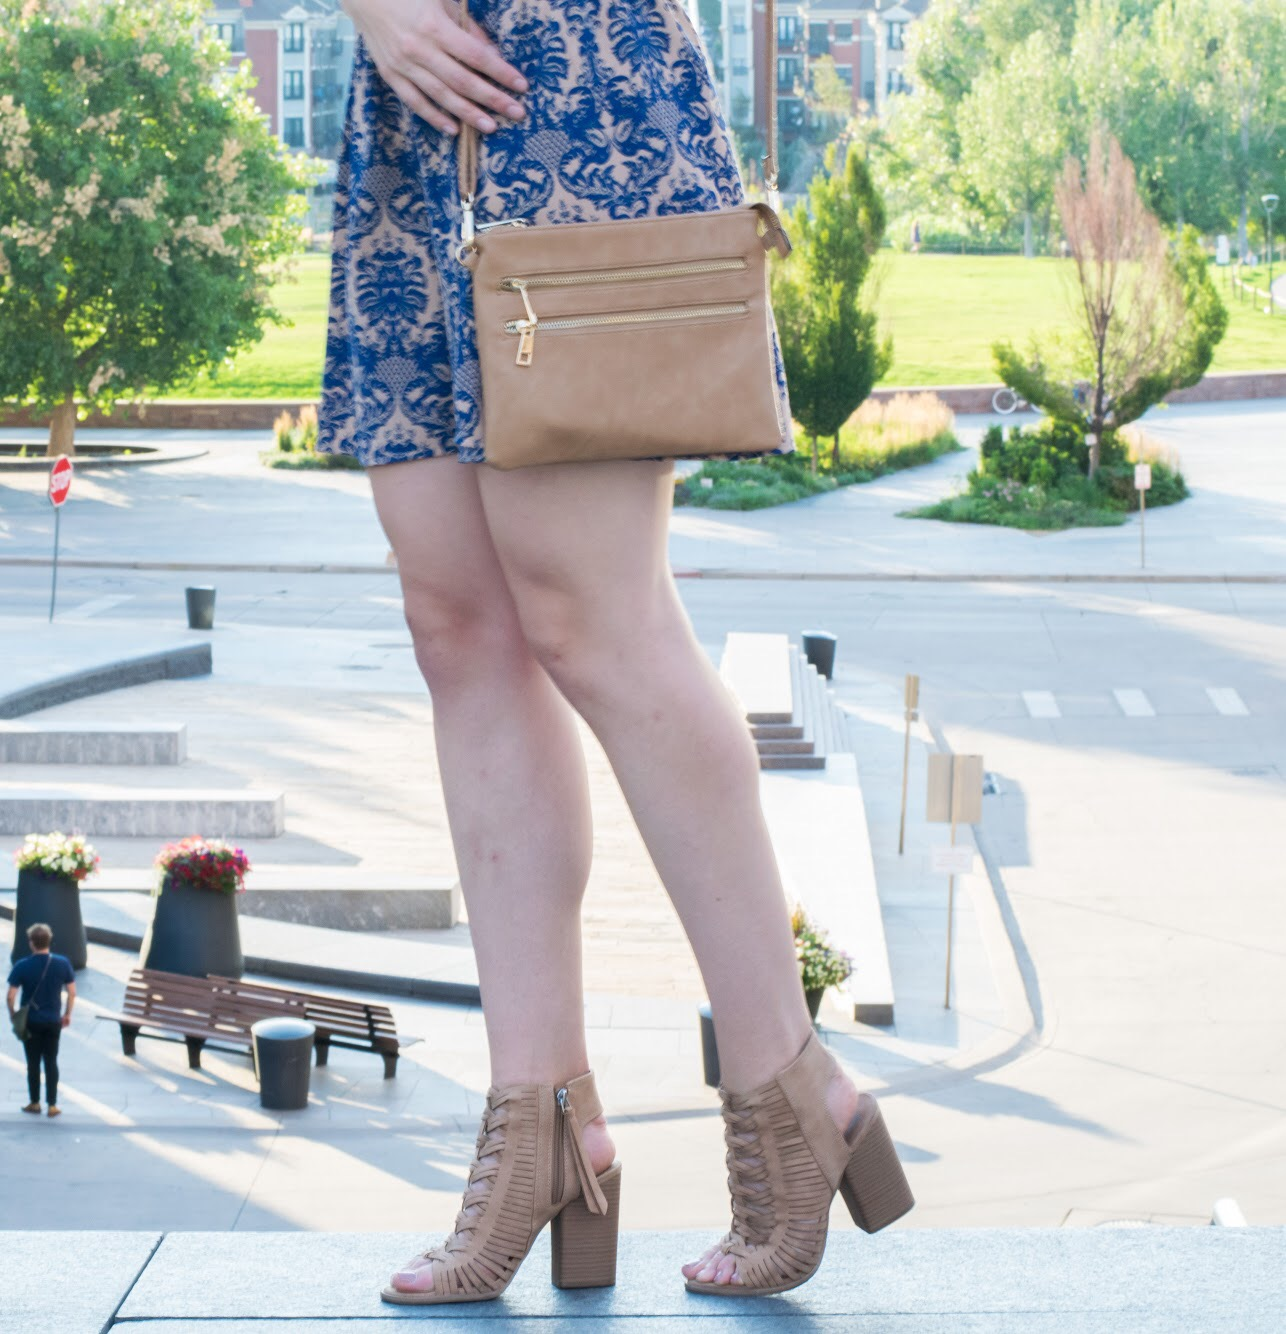 dv Alyson Peep Toe Booties - Taupe from Target